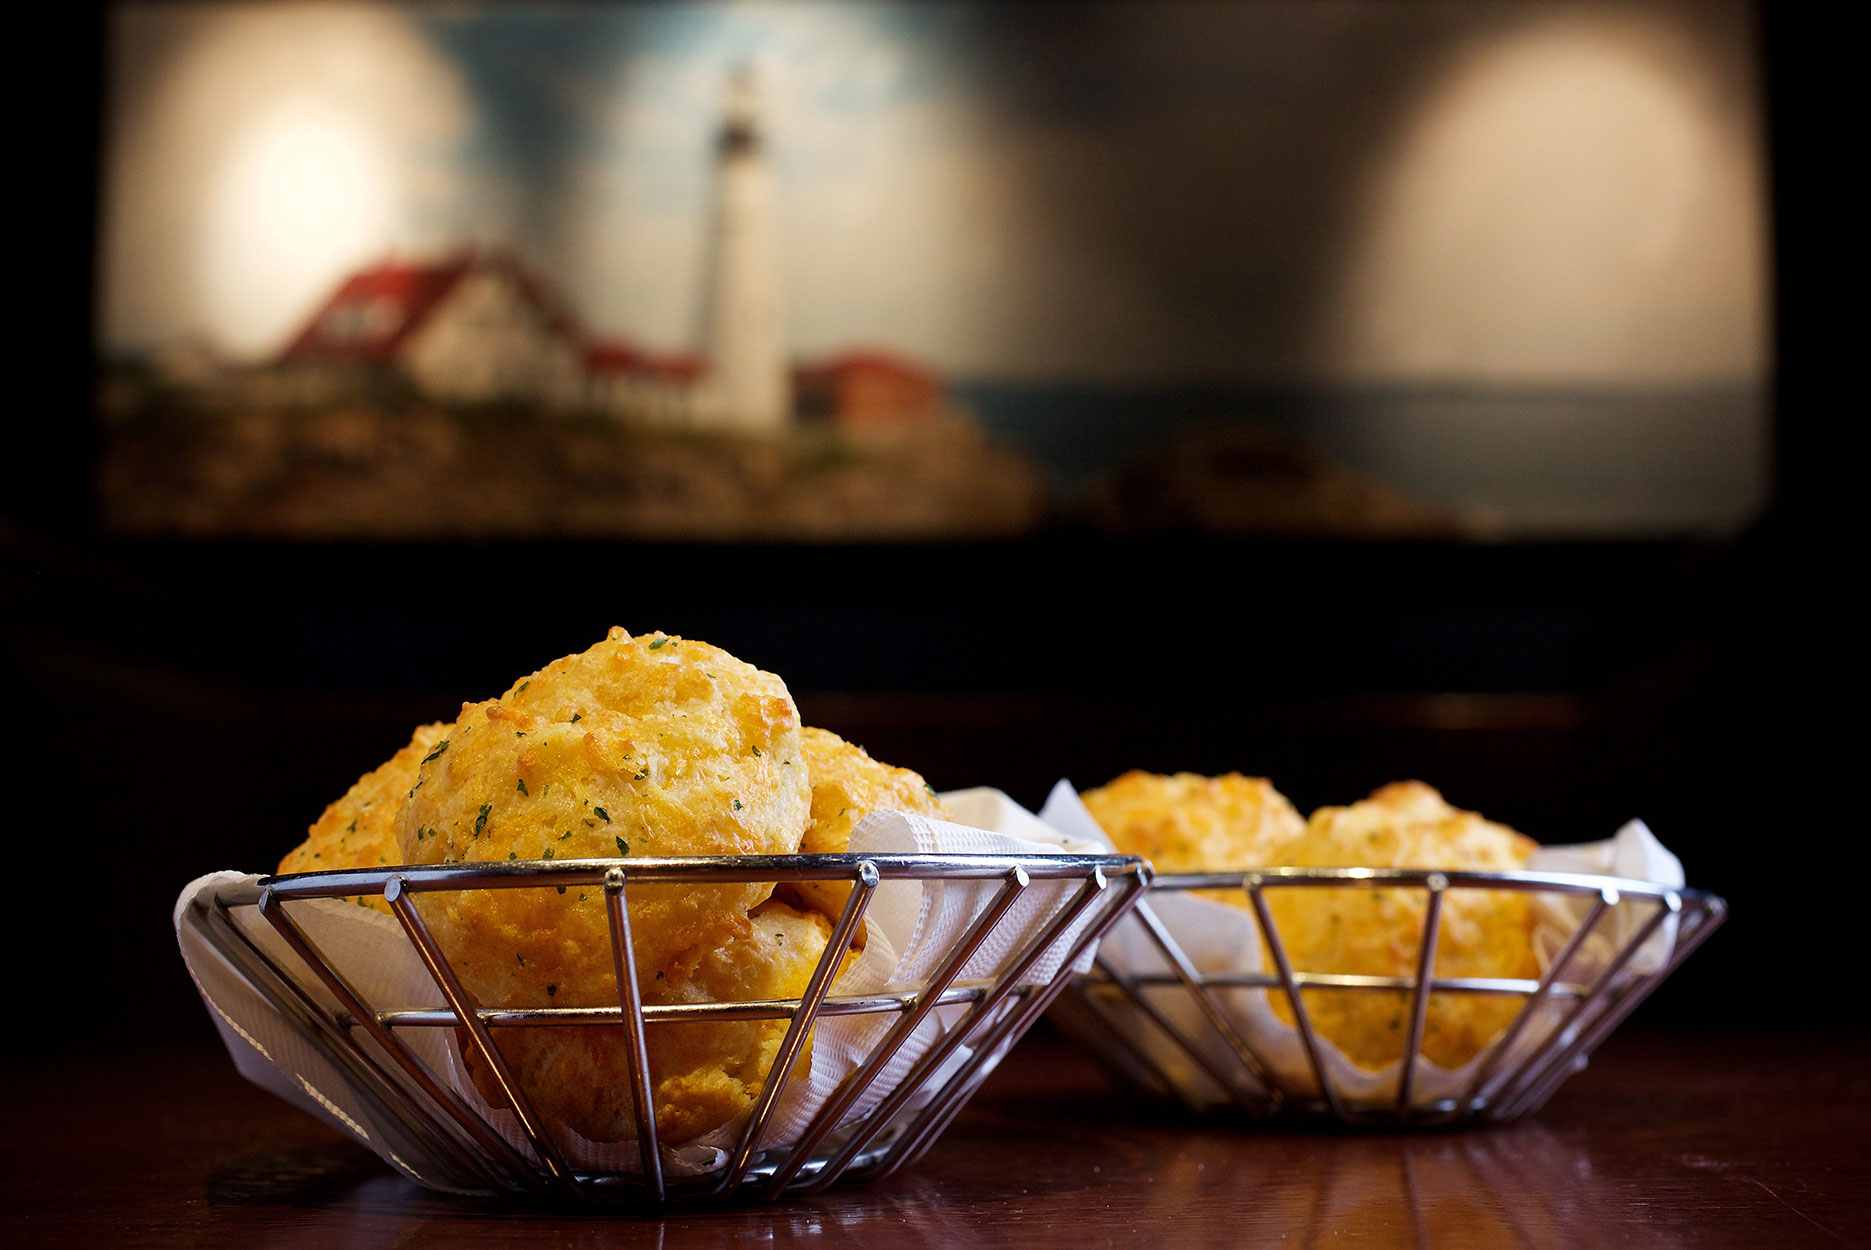 Baskets of cheddar bay biscuits at Red Lobster